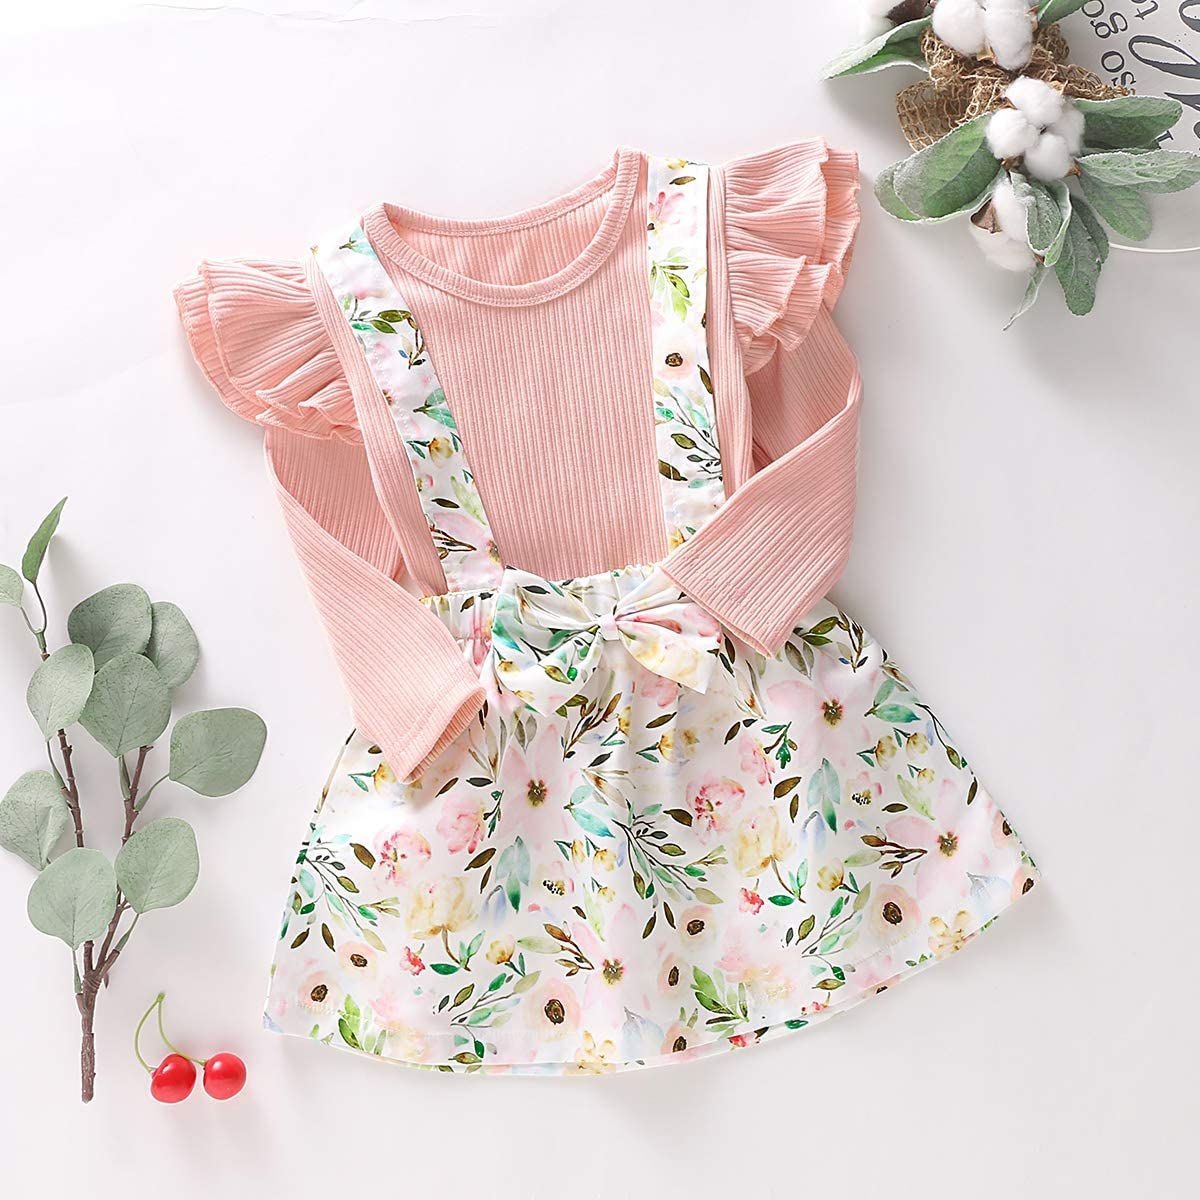 greatmtx 2pcs//Set Kids Toddler Girl Ruffle Long Sleeve Shirt Floral Suspender Skirt Outfits Clothes Set for 1-6 Years